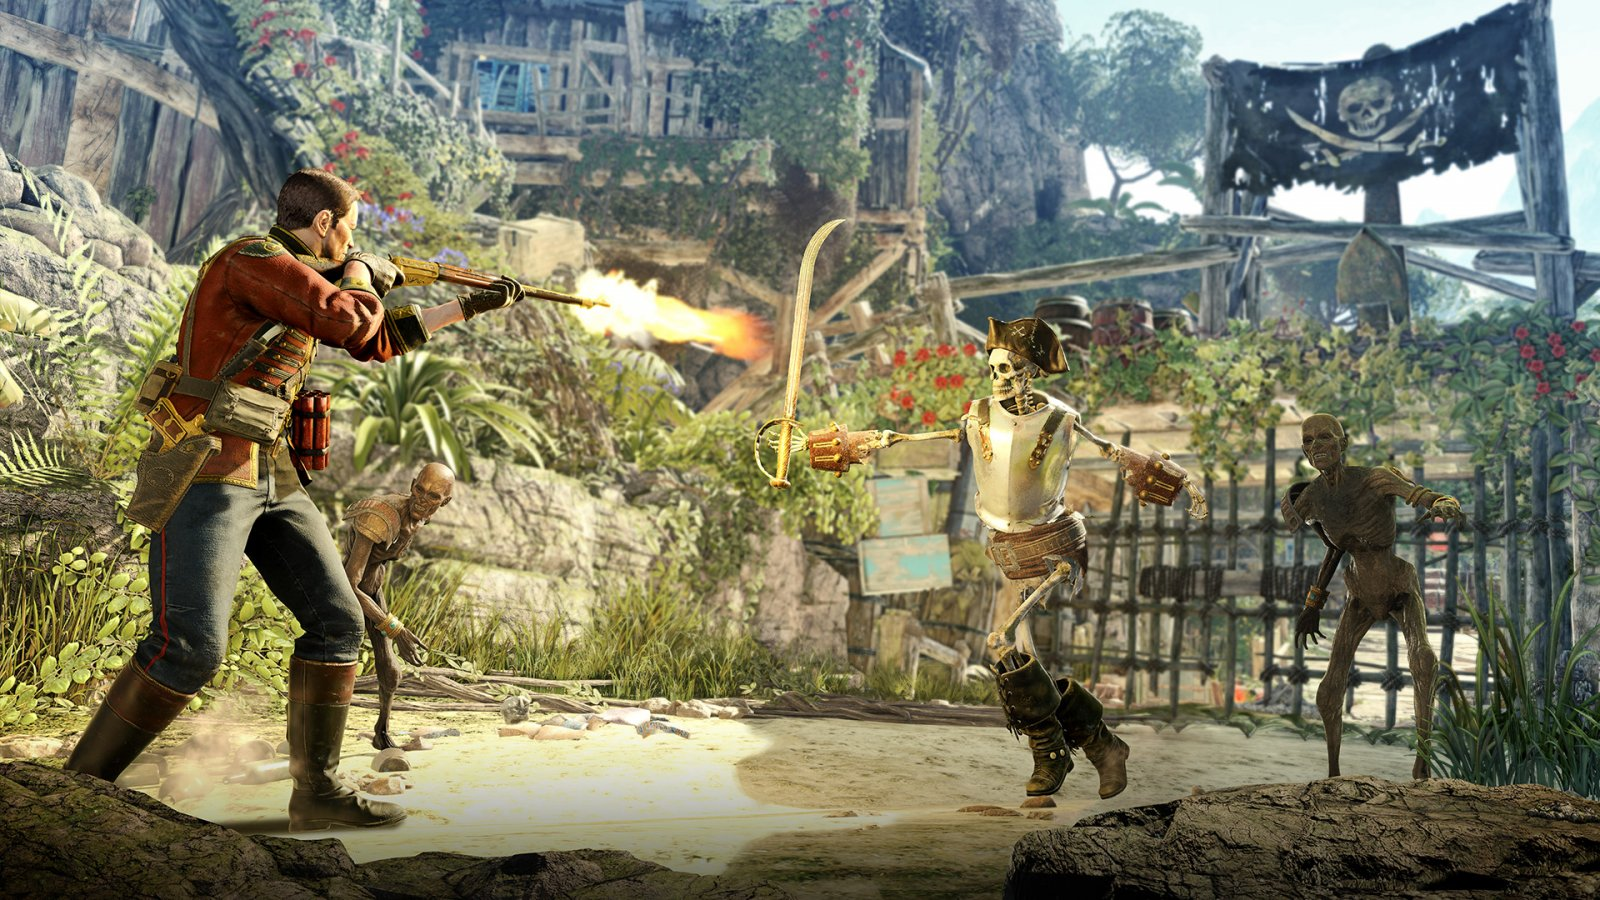 Strange Brigade - The Thrice Damned 1: Isle of the Dead Review